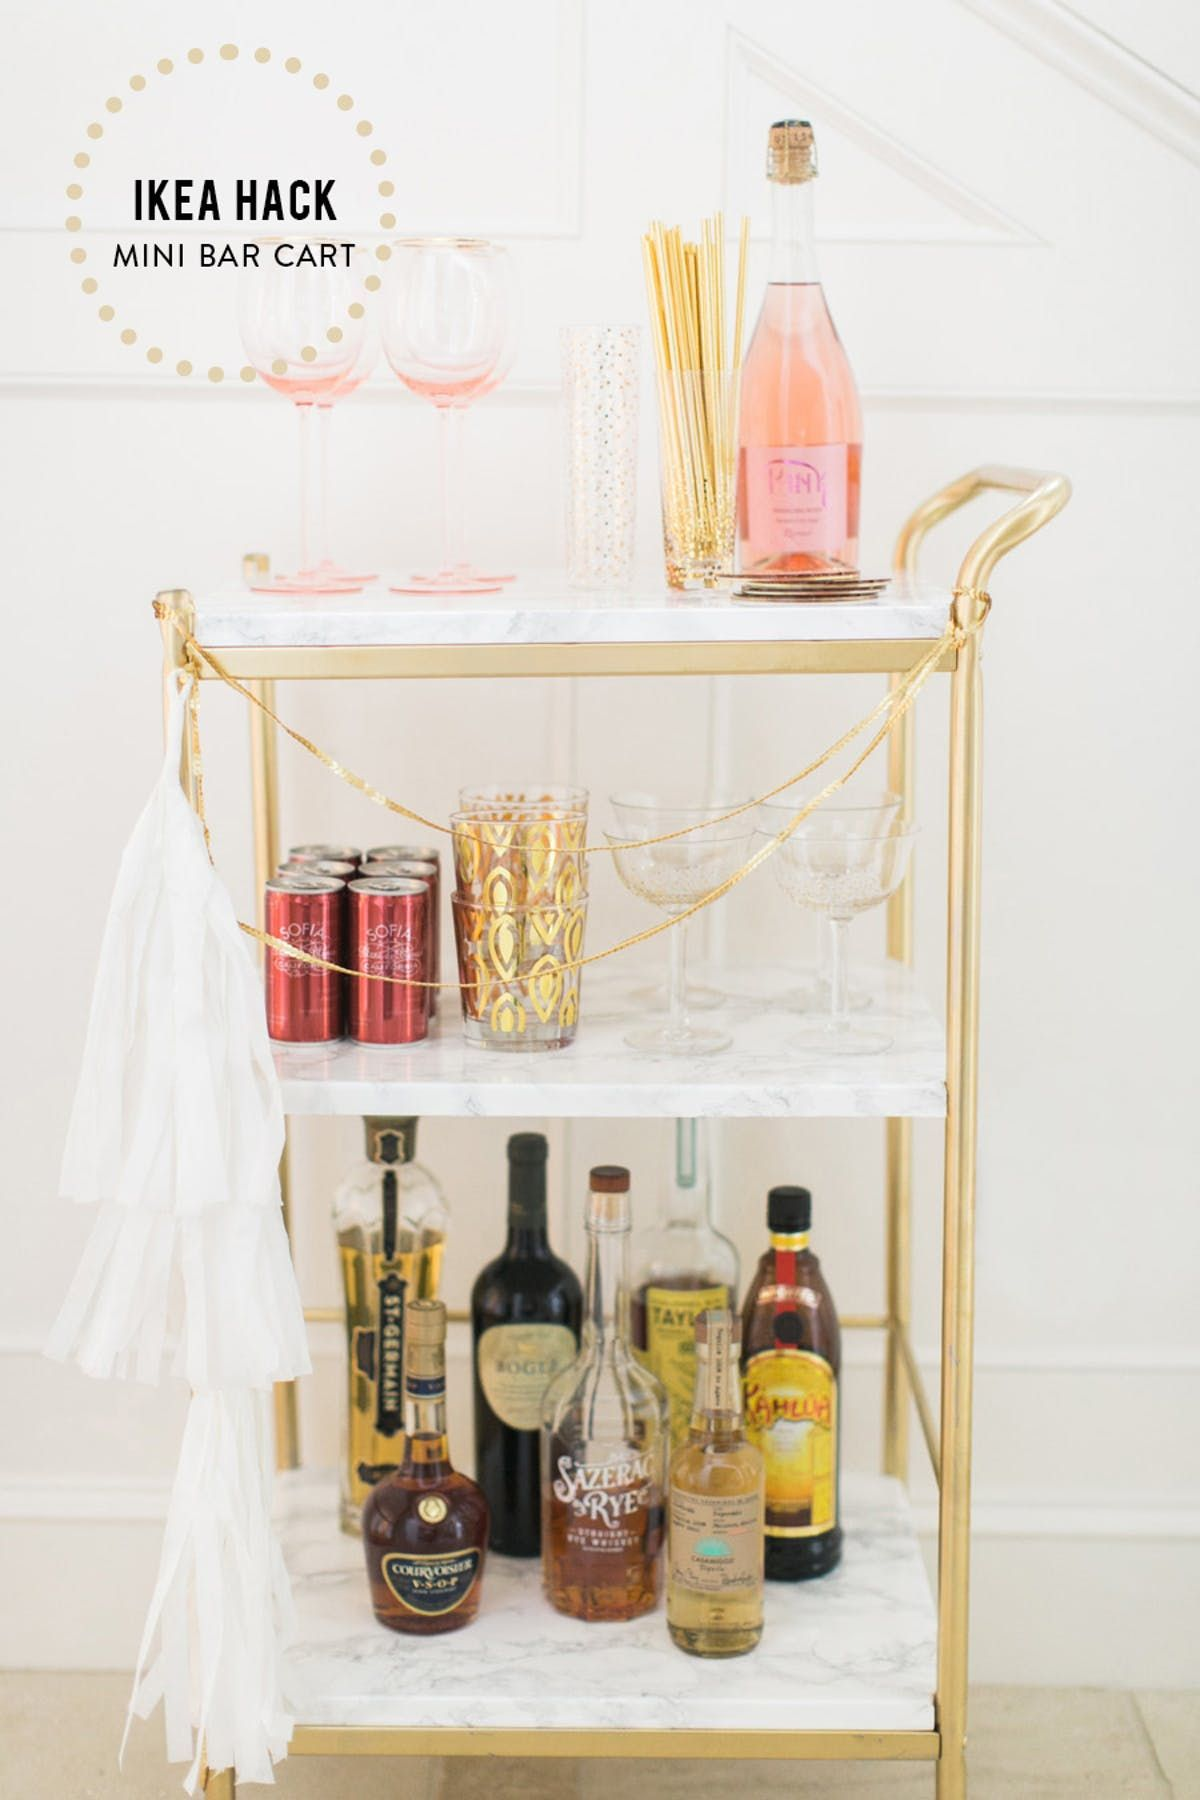 Ikea Hack Diy Mini Bar Cart